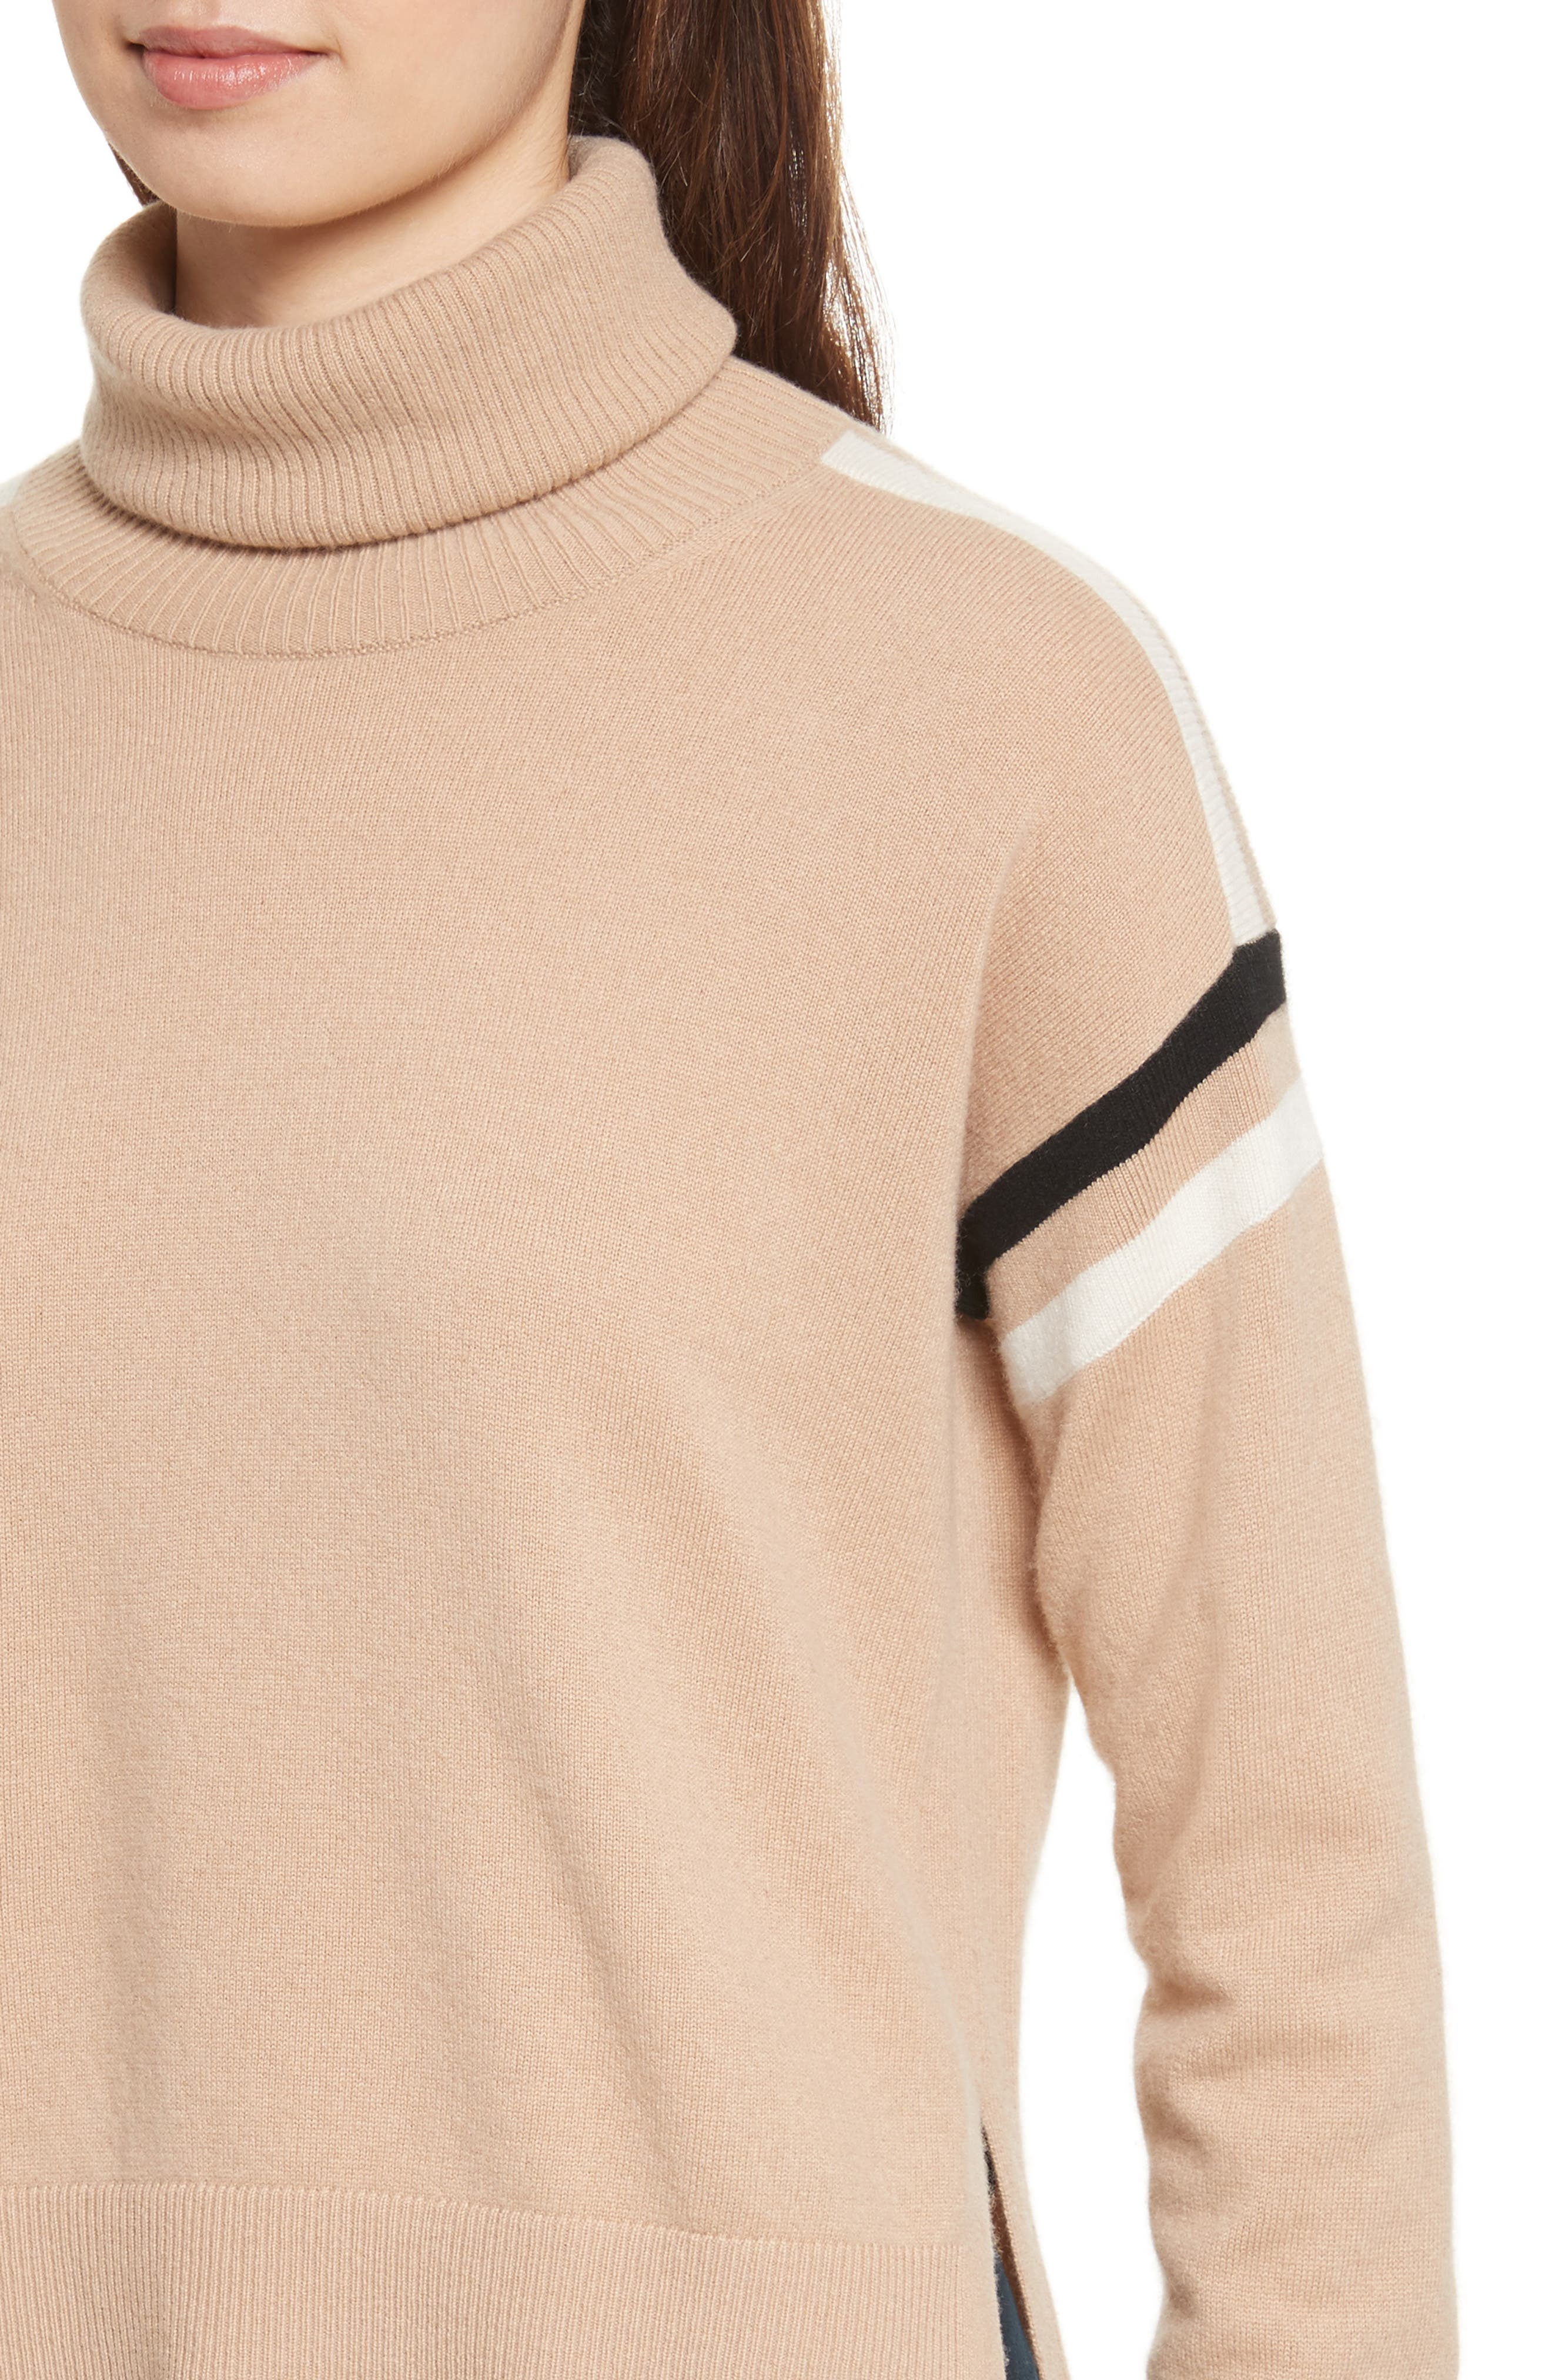 Canter Cashmere Turtleneck,                             Alternate thumbnail 4, color,                             Camel/ Ivory/ Black